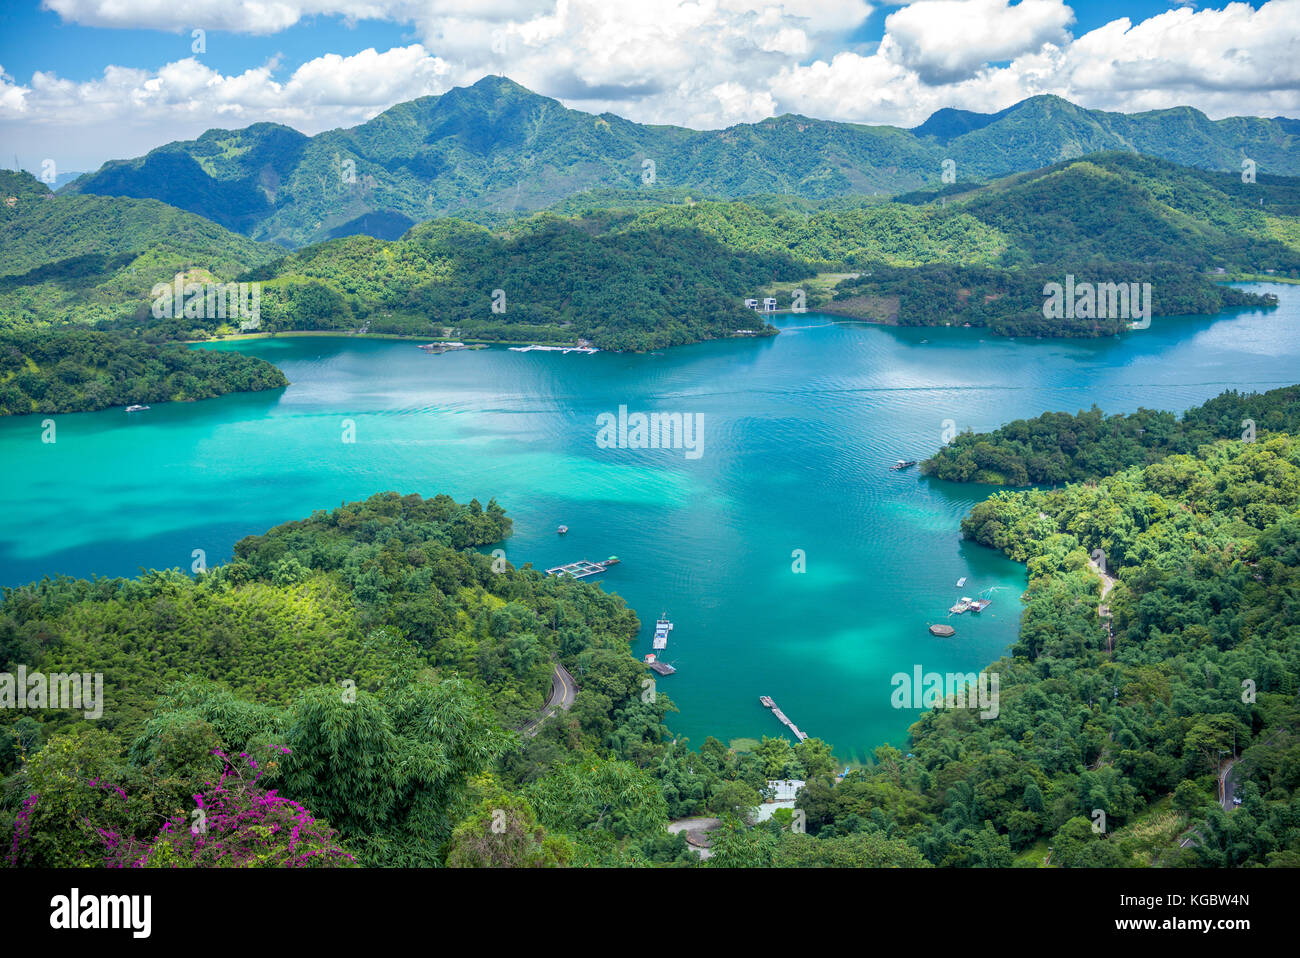 Landscape of Sun-Moon Lake in Nantou, Taiwan - Stock Image